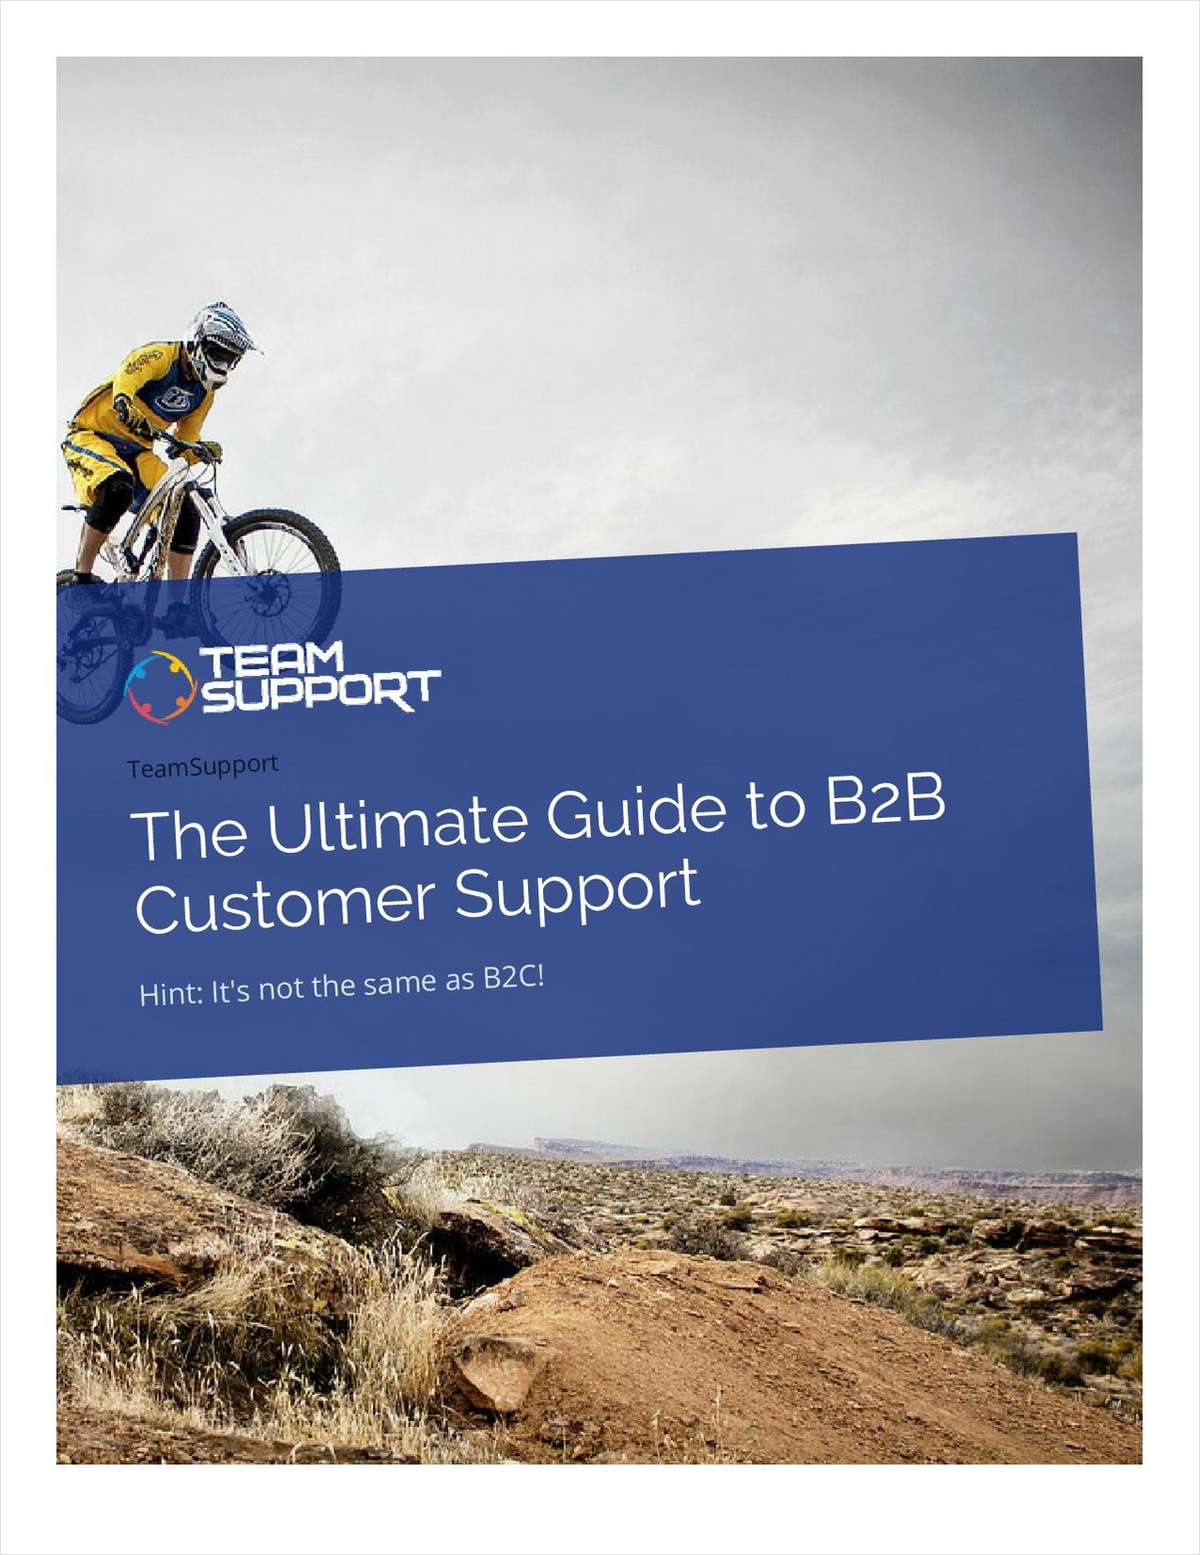 The Ultimate Guide to B2B Customer Support